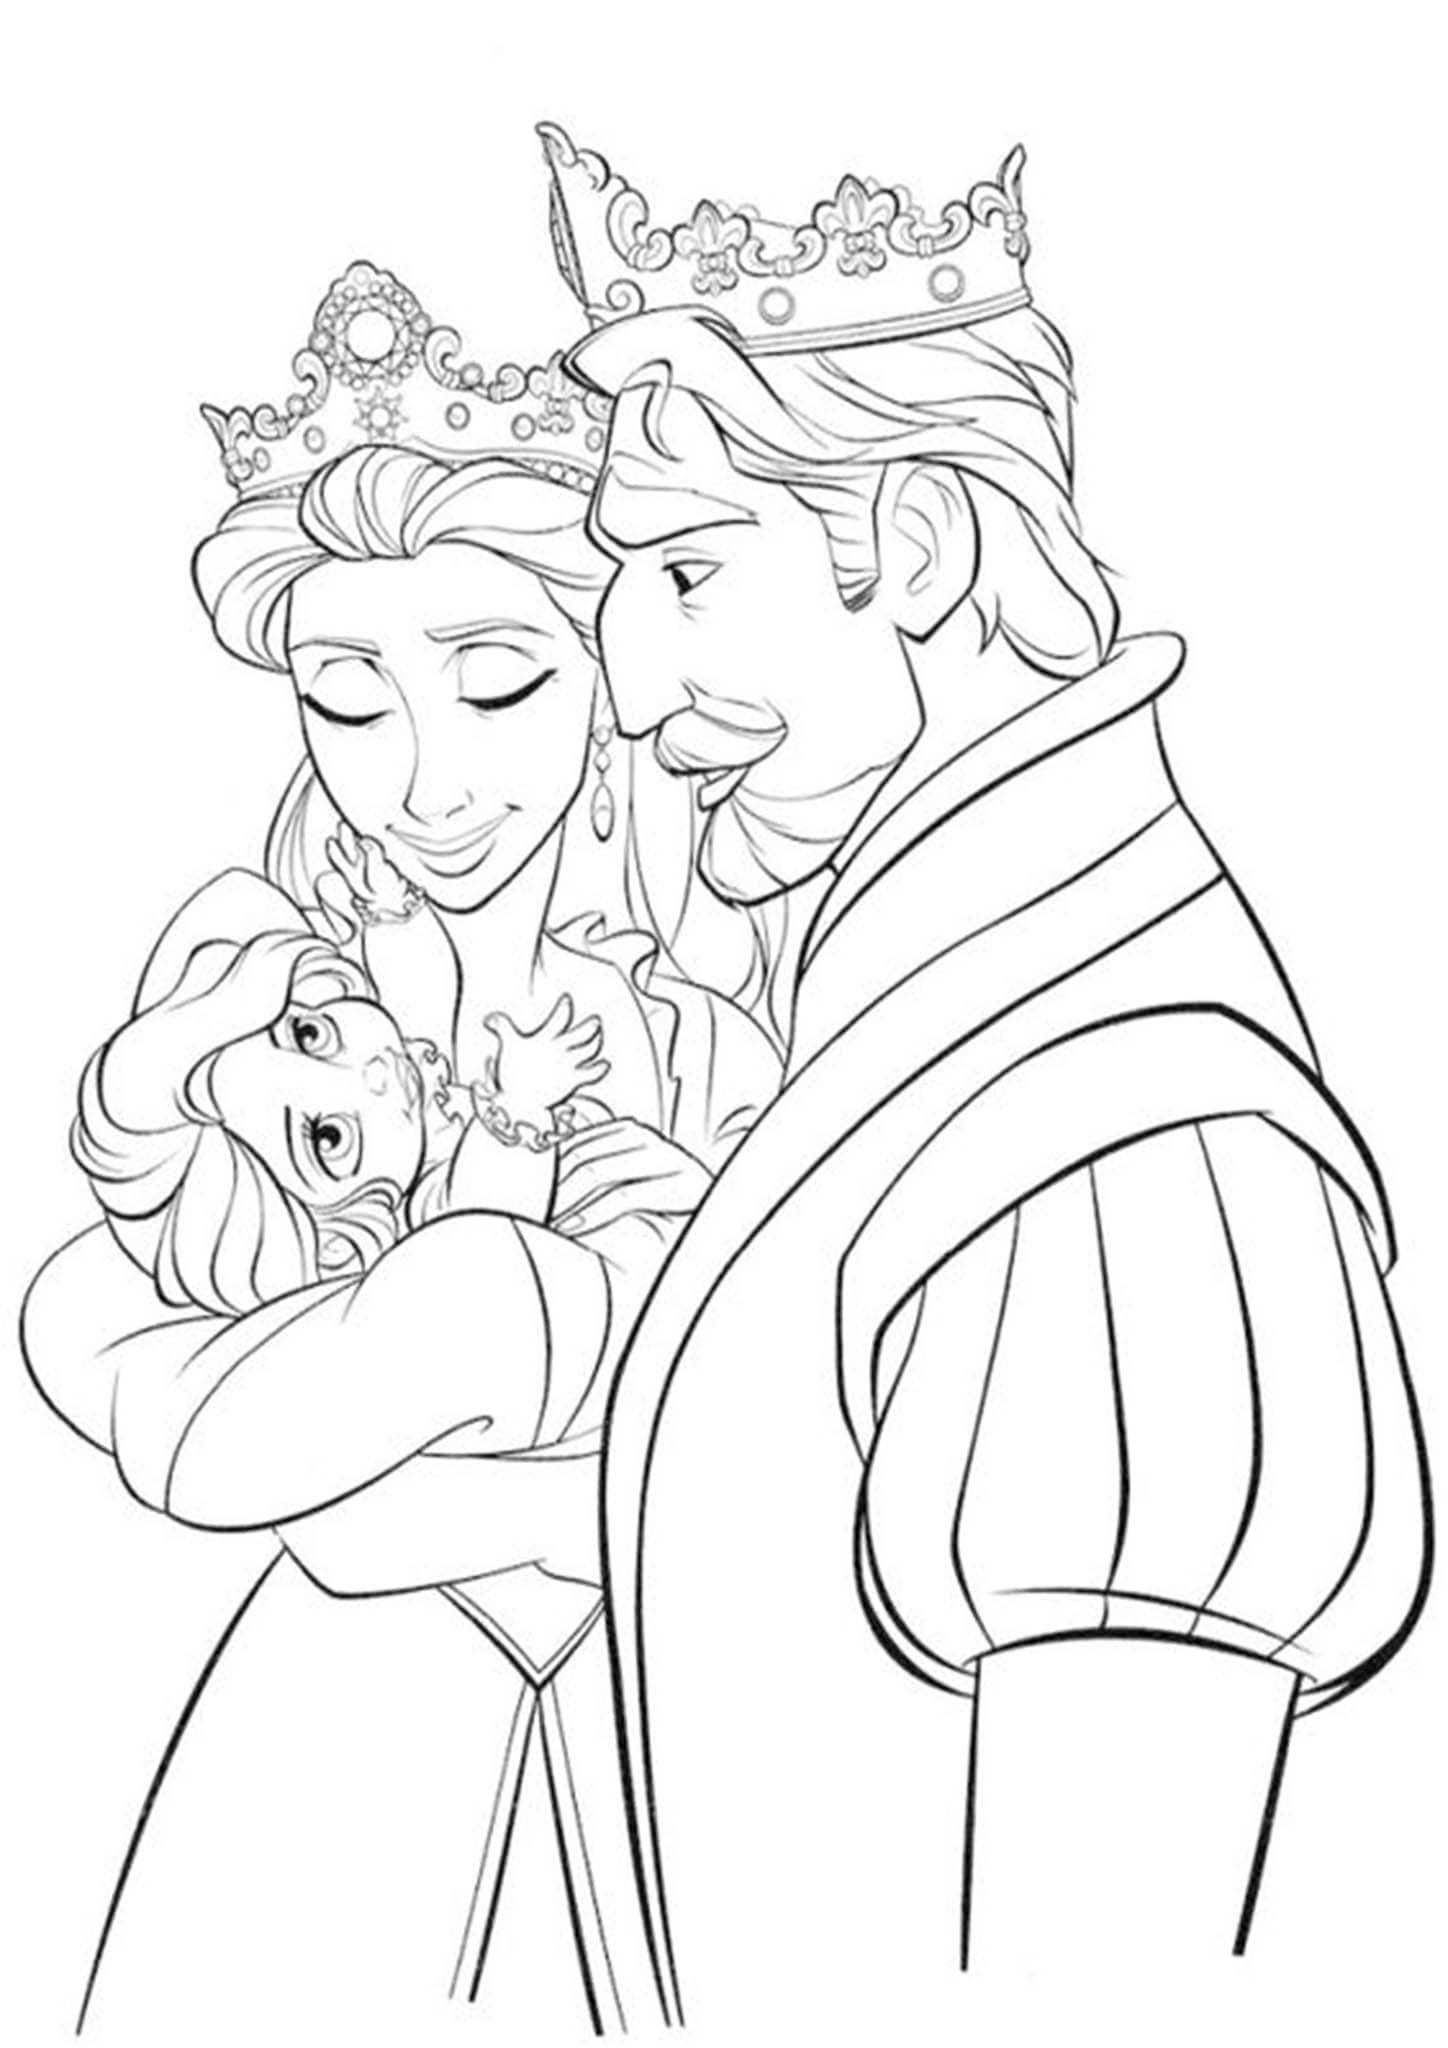 Free & Easy To Print Tangled Coloring Pages | Tangled ...